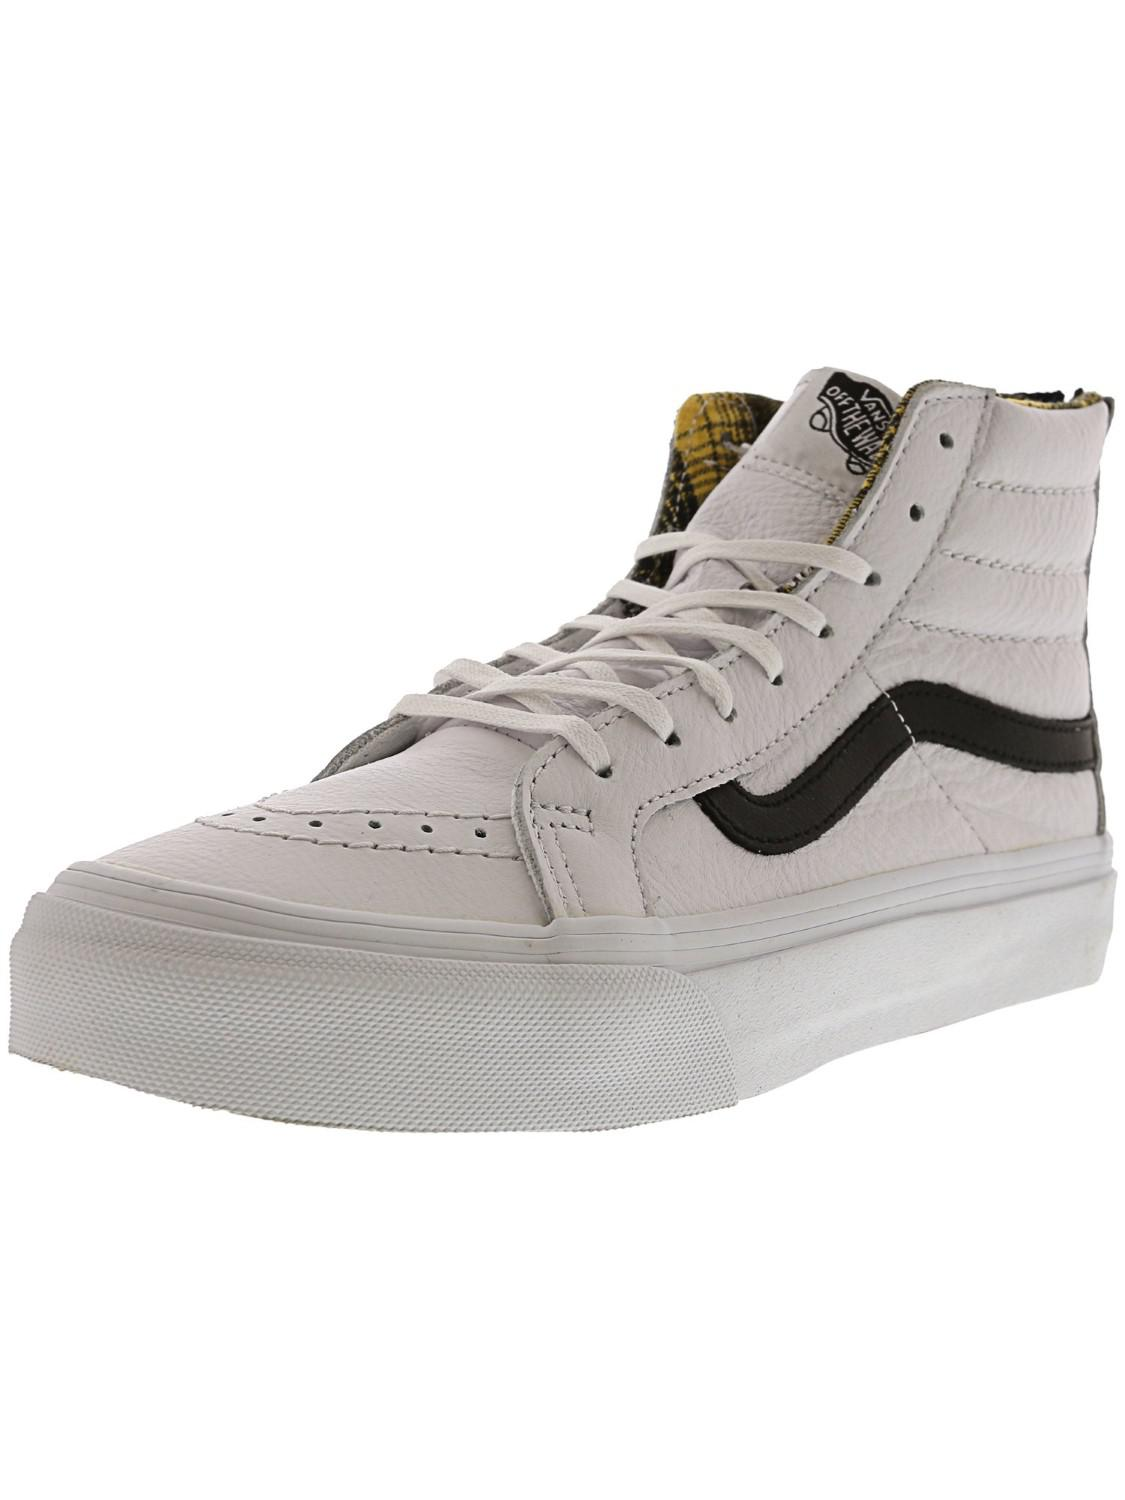 bdc481a751 Lyst - Vans Sk8 Hi Slim Zip Shoes in White for Men